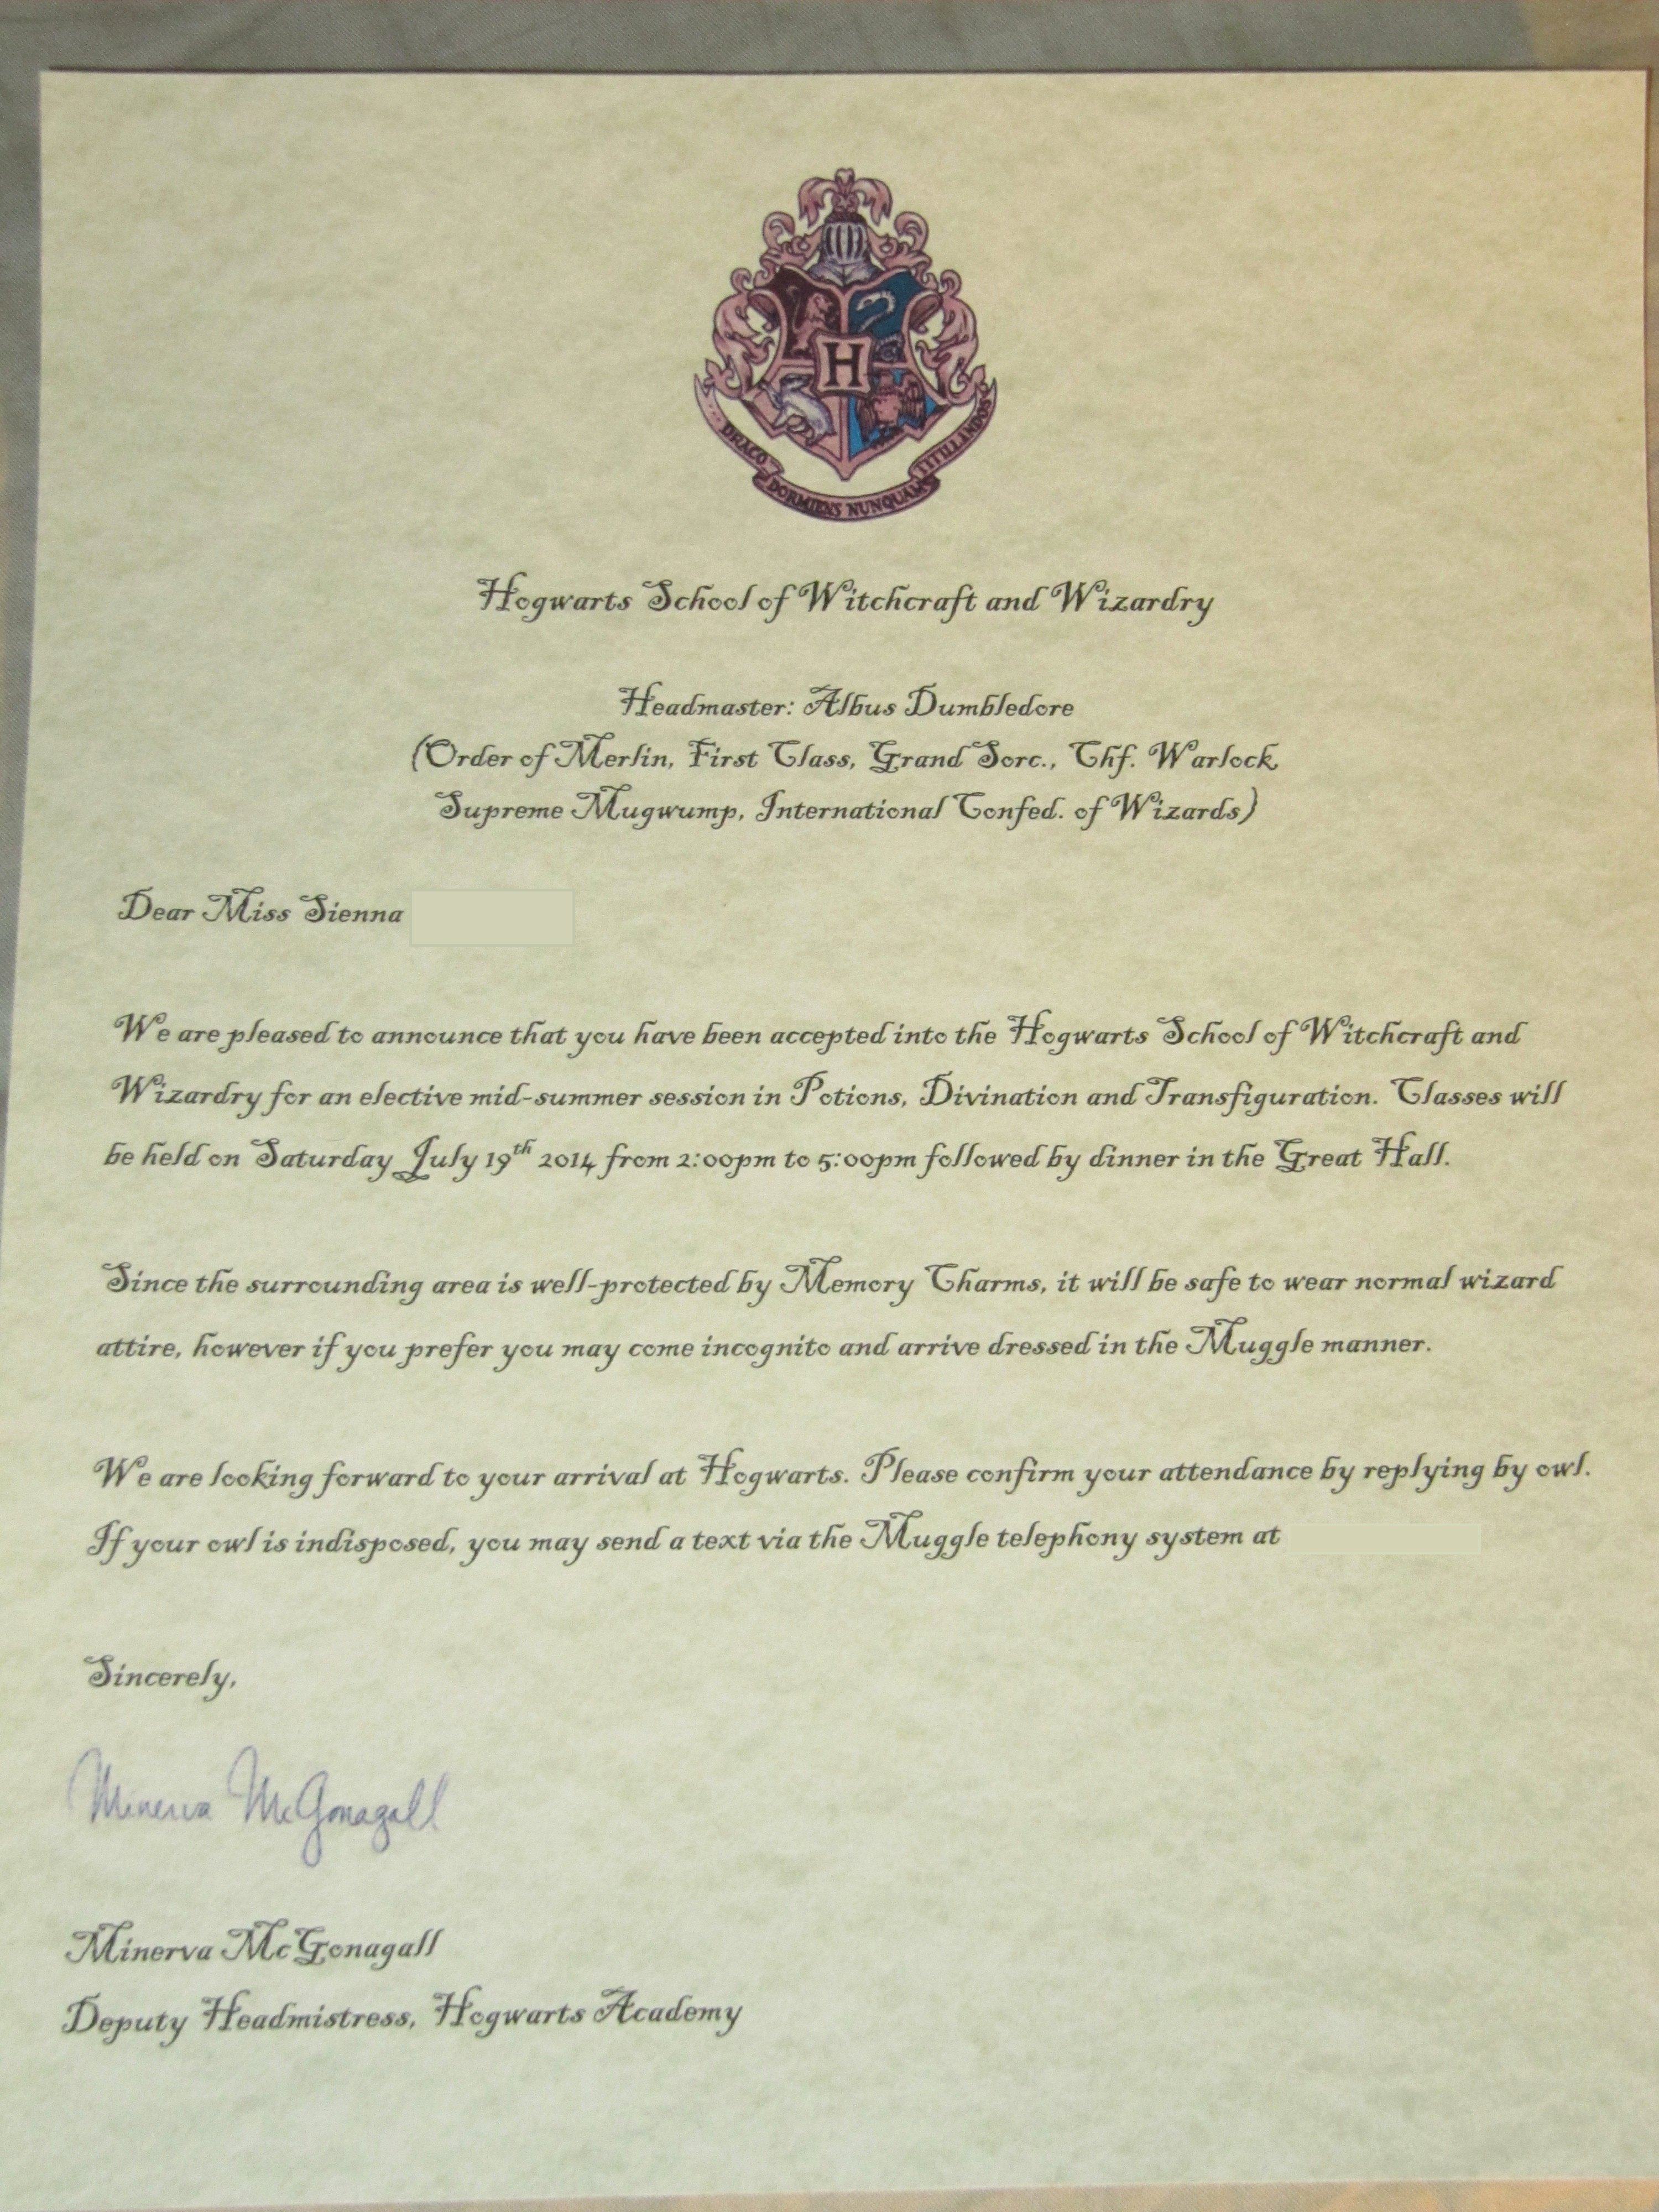 Harry Potter Acceptance Letter Template Beautiful Harry Potter Party Planning – Part 1 Invitations